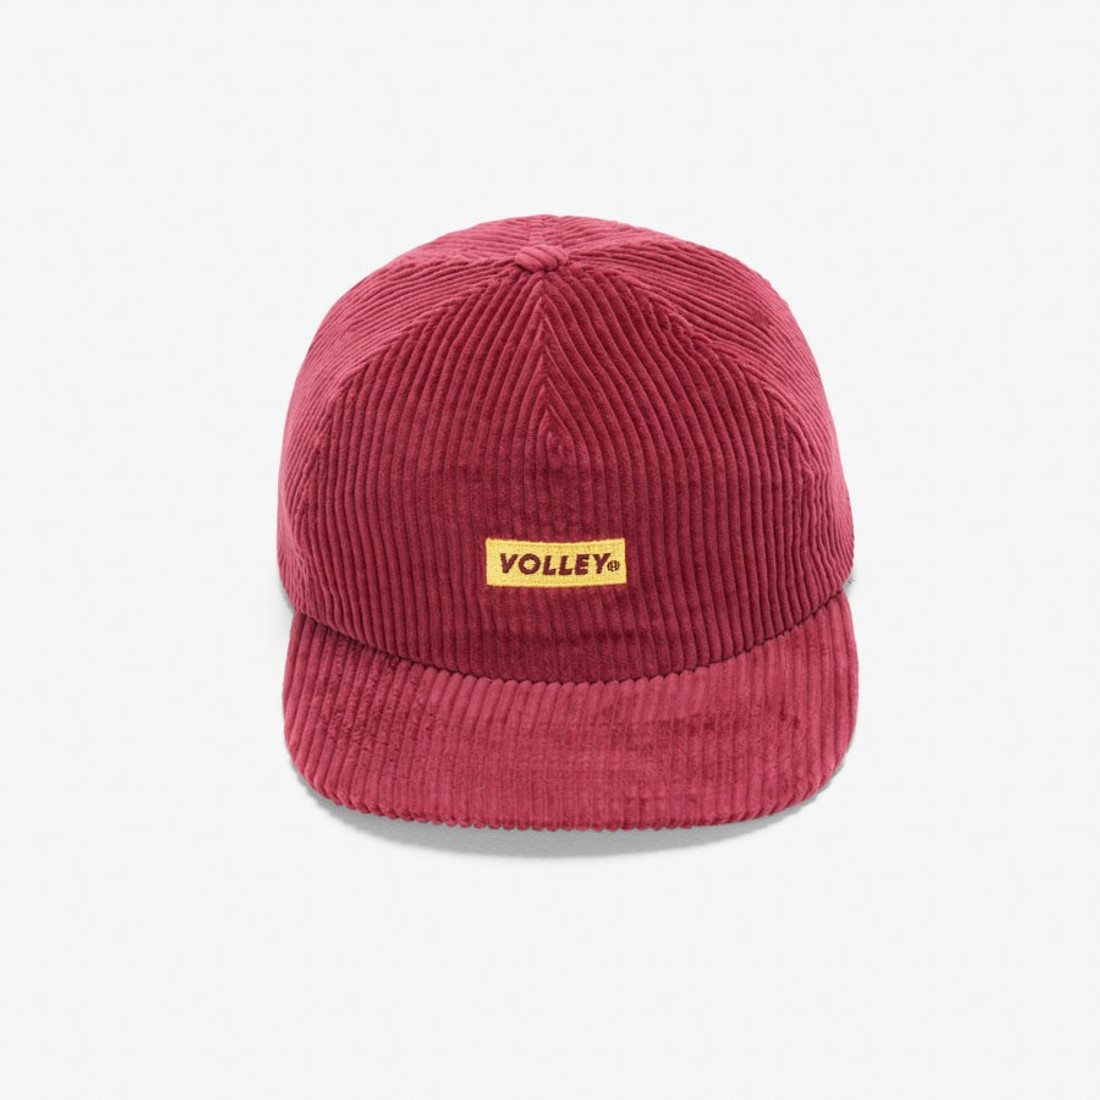 Volley NONCORDUROY HAT Red   0